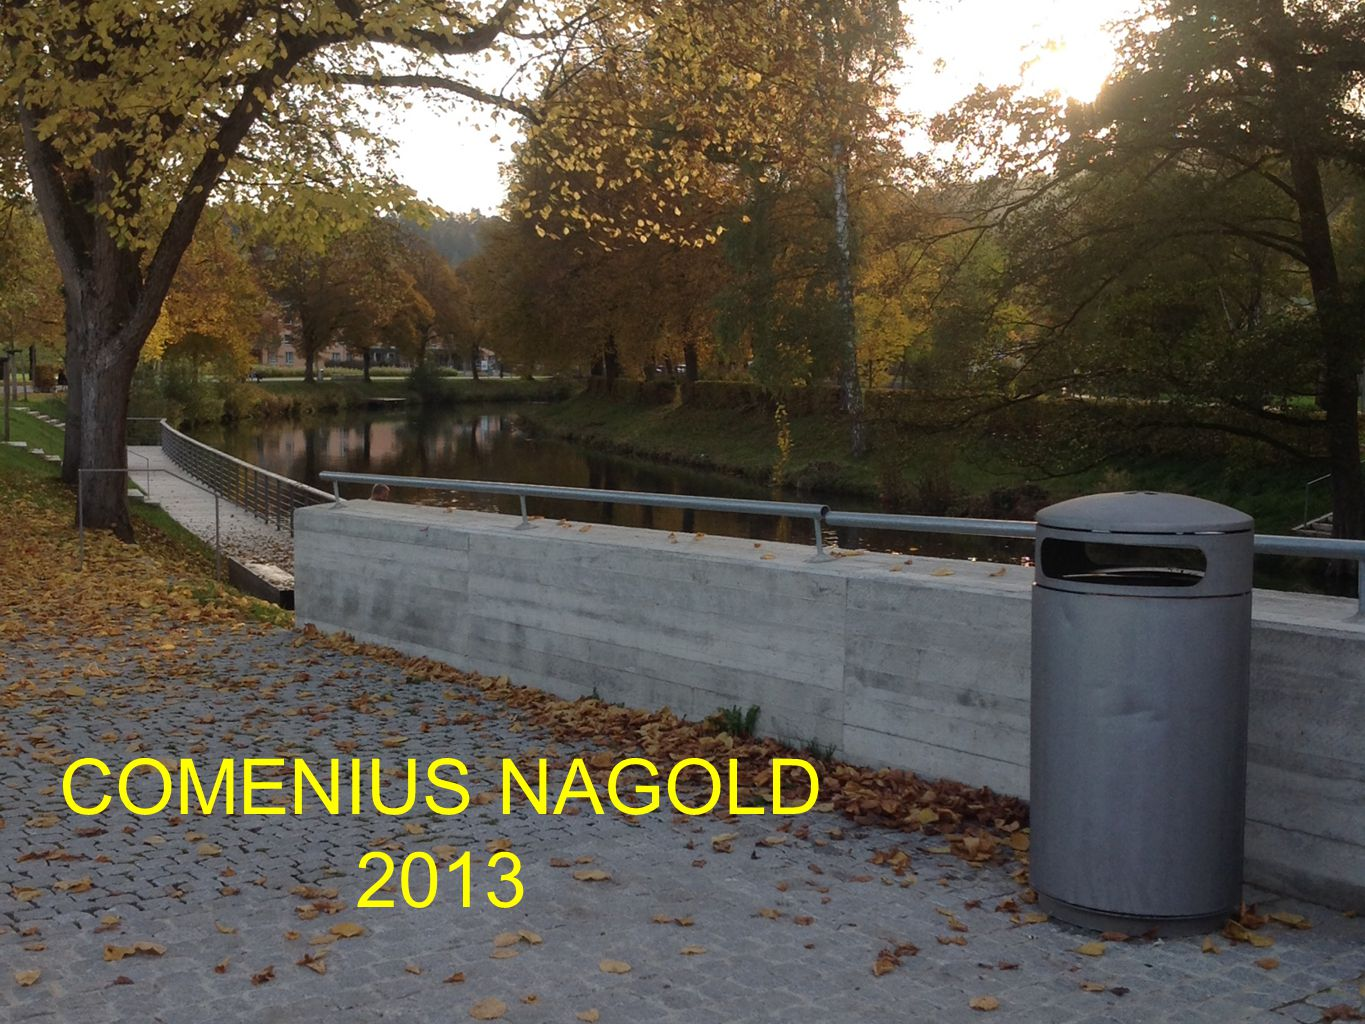 COMENIUS NAGOLD 2013